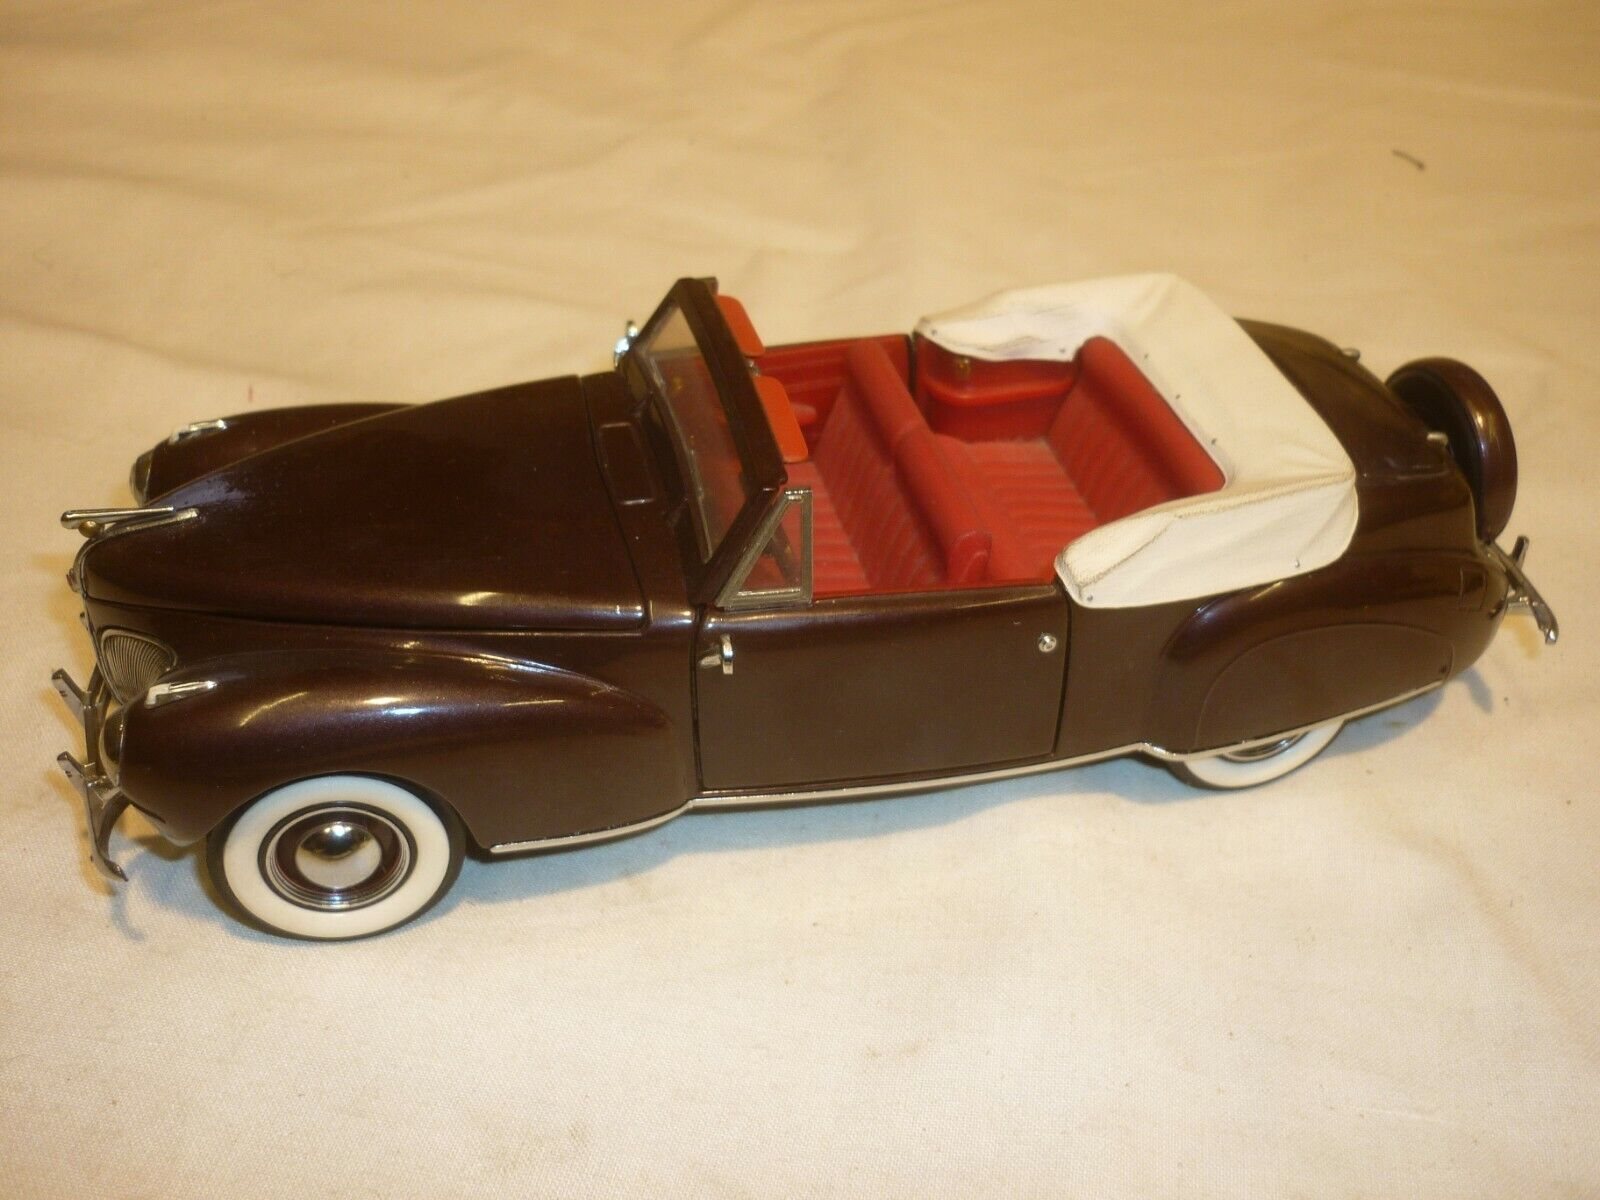 Un Franklin Comme neuf scale model of a 1941 Lincoln Continental, sans boîte,